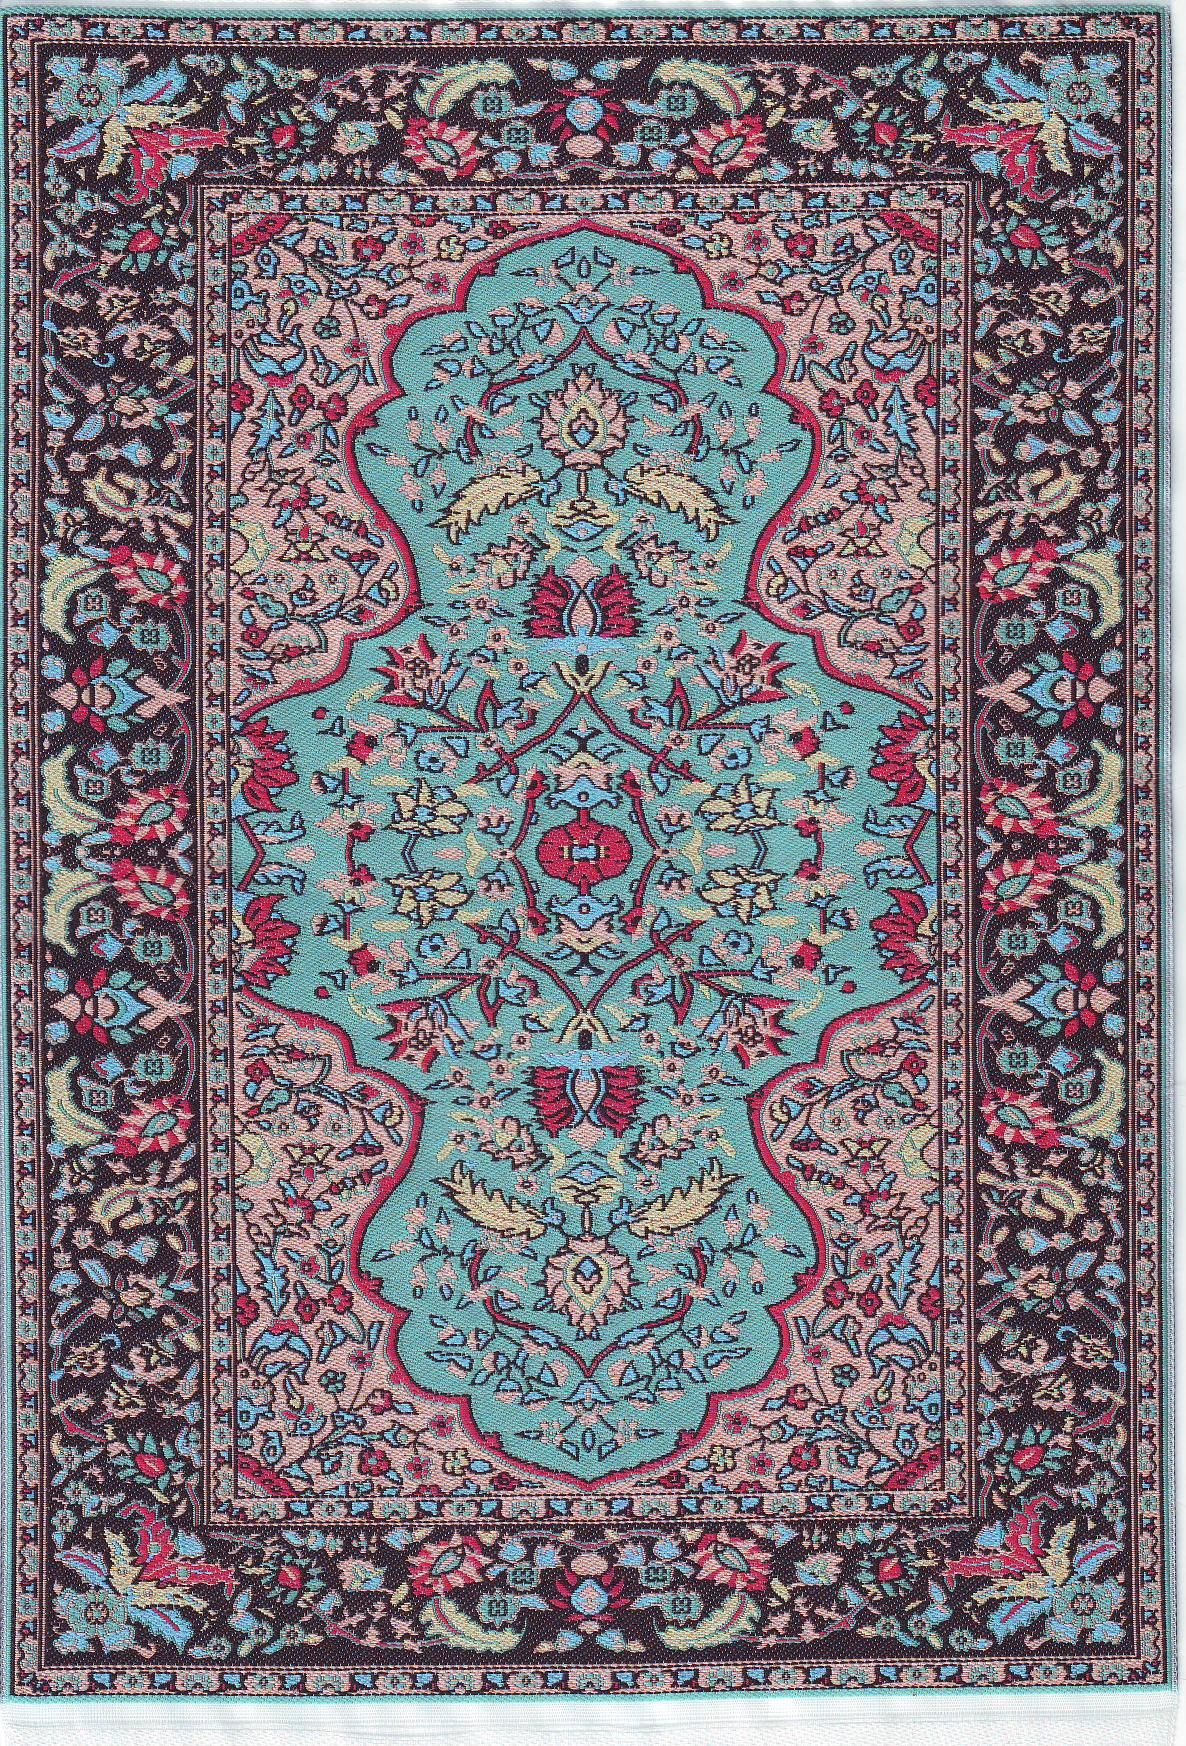 Persian Carpet Pieces Of Home Rugs On Carpet Persian